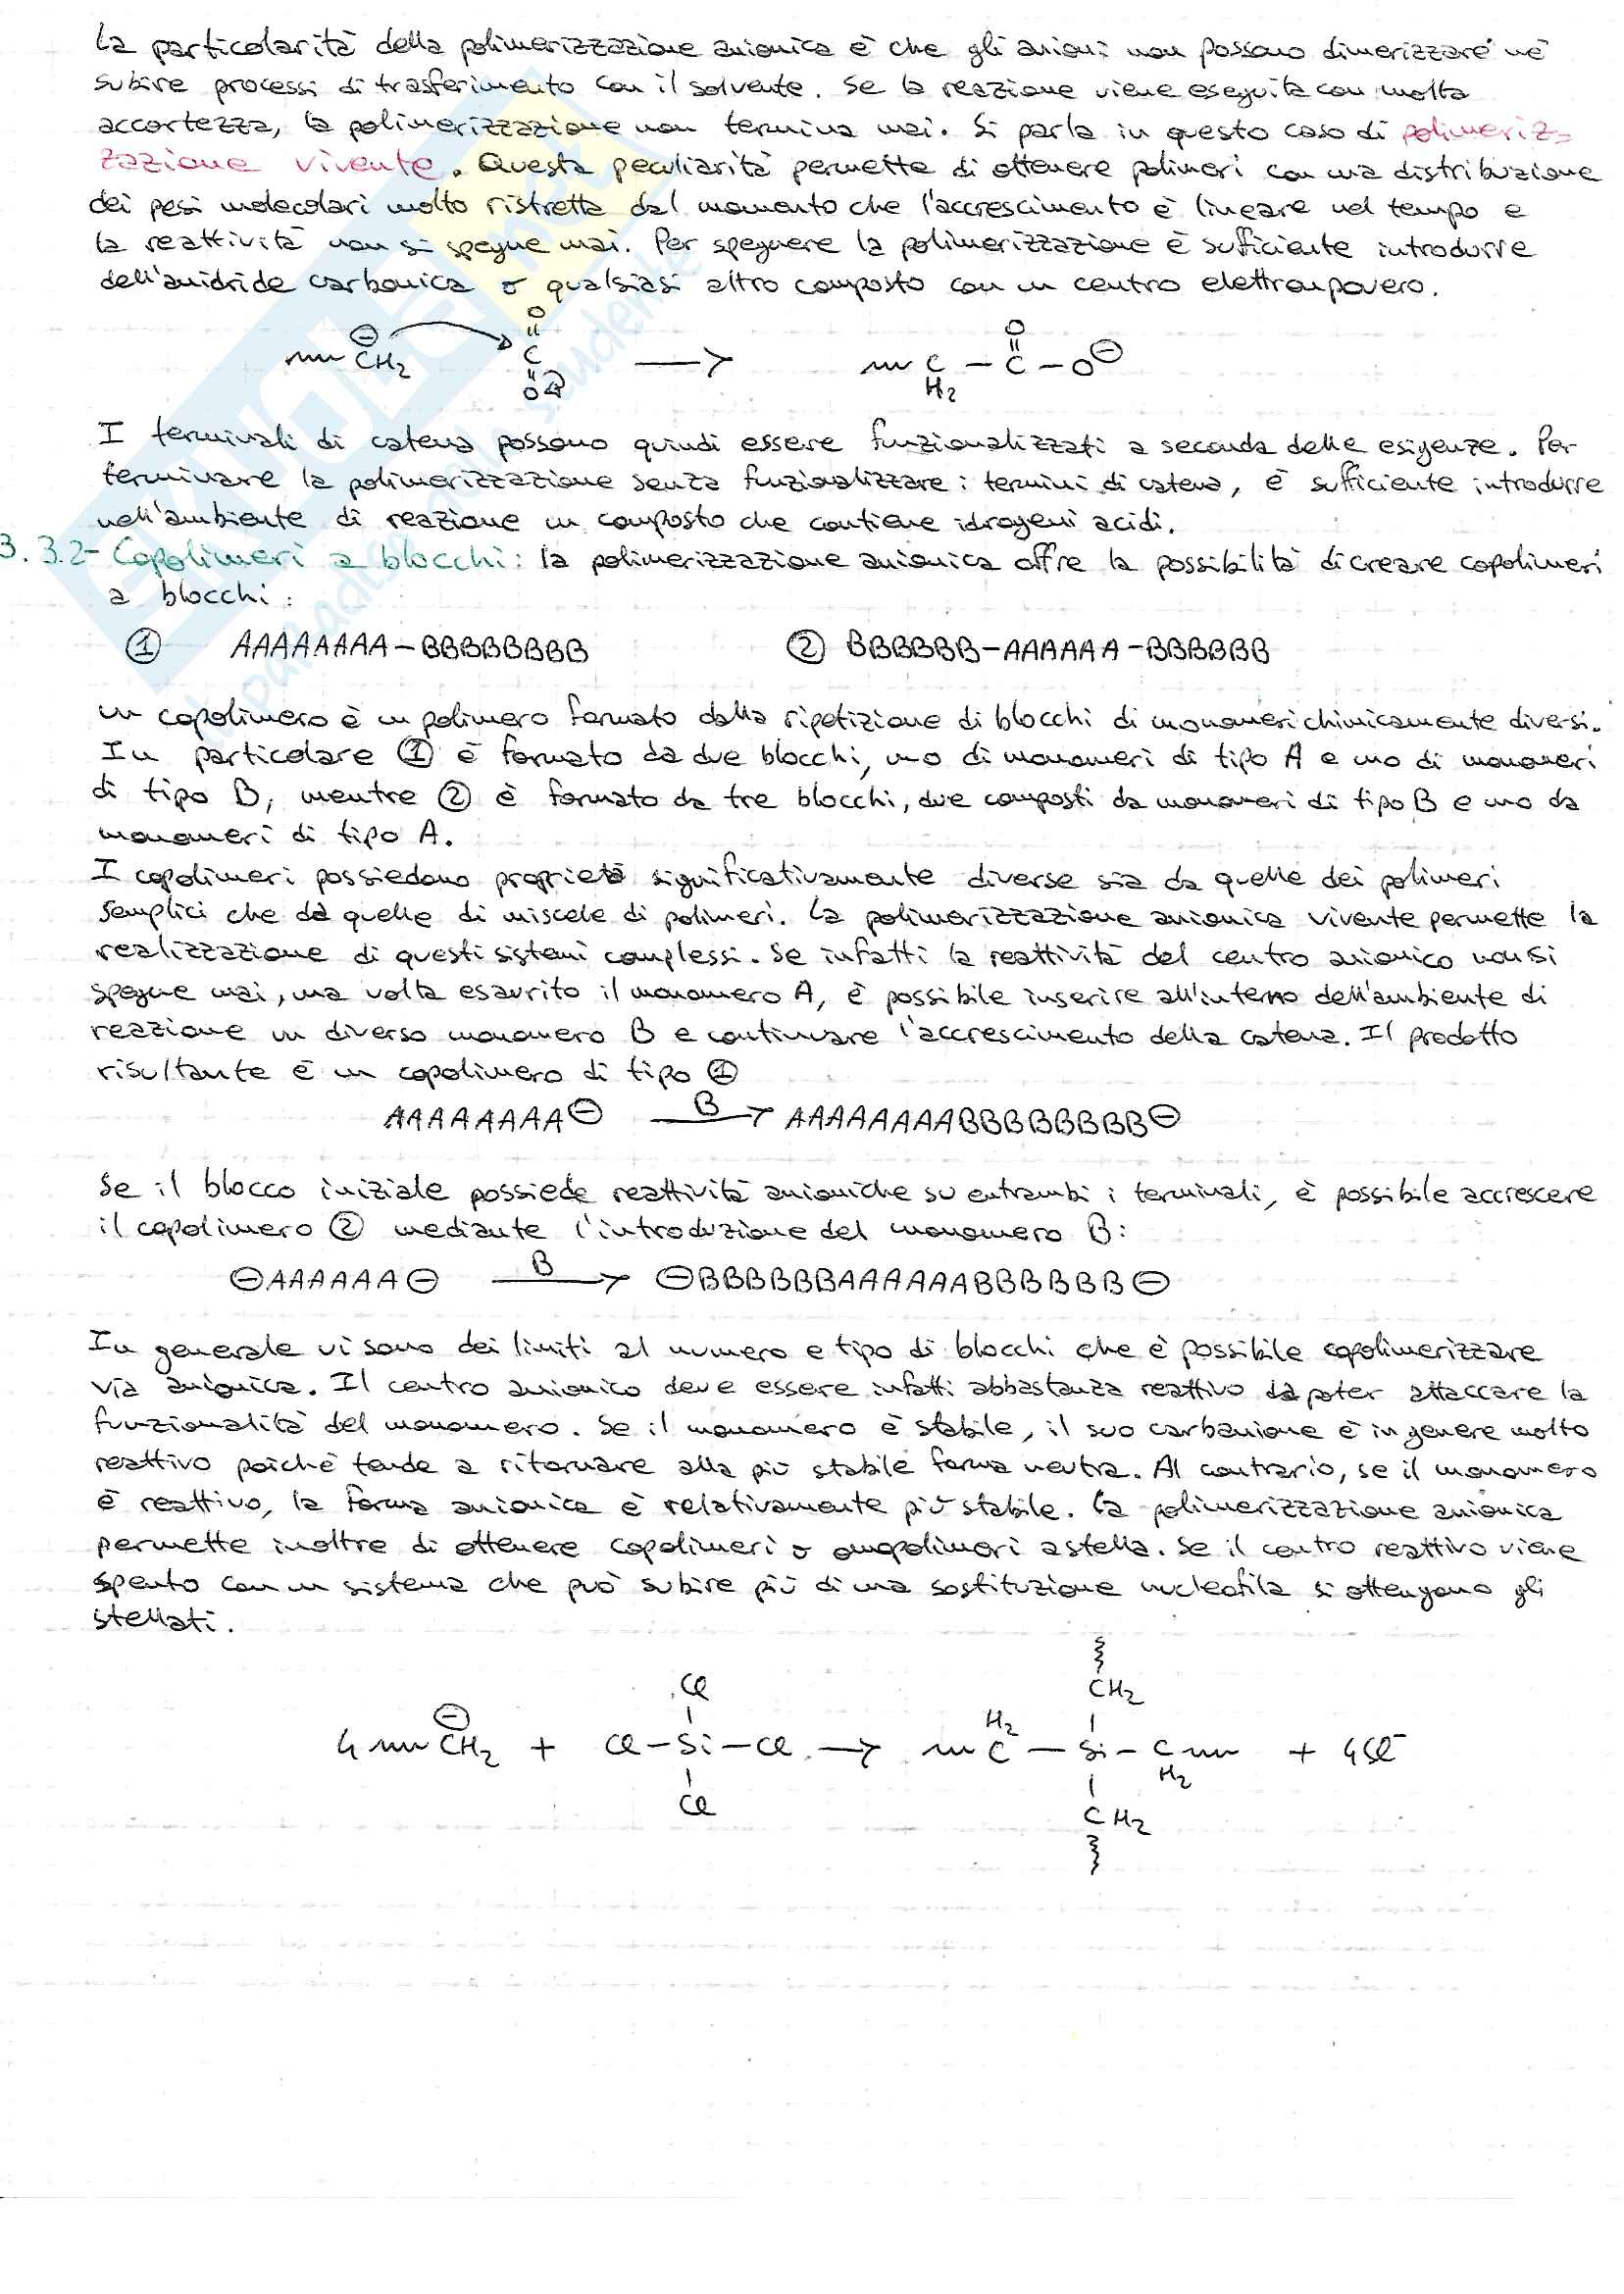 Chimica Macromolecolare Pag. 16